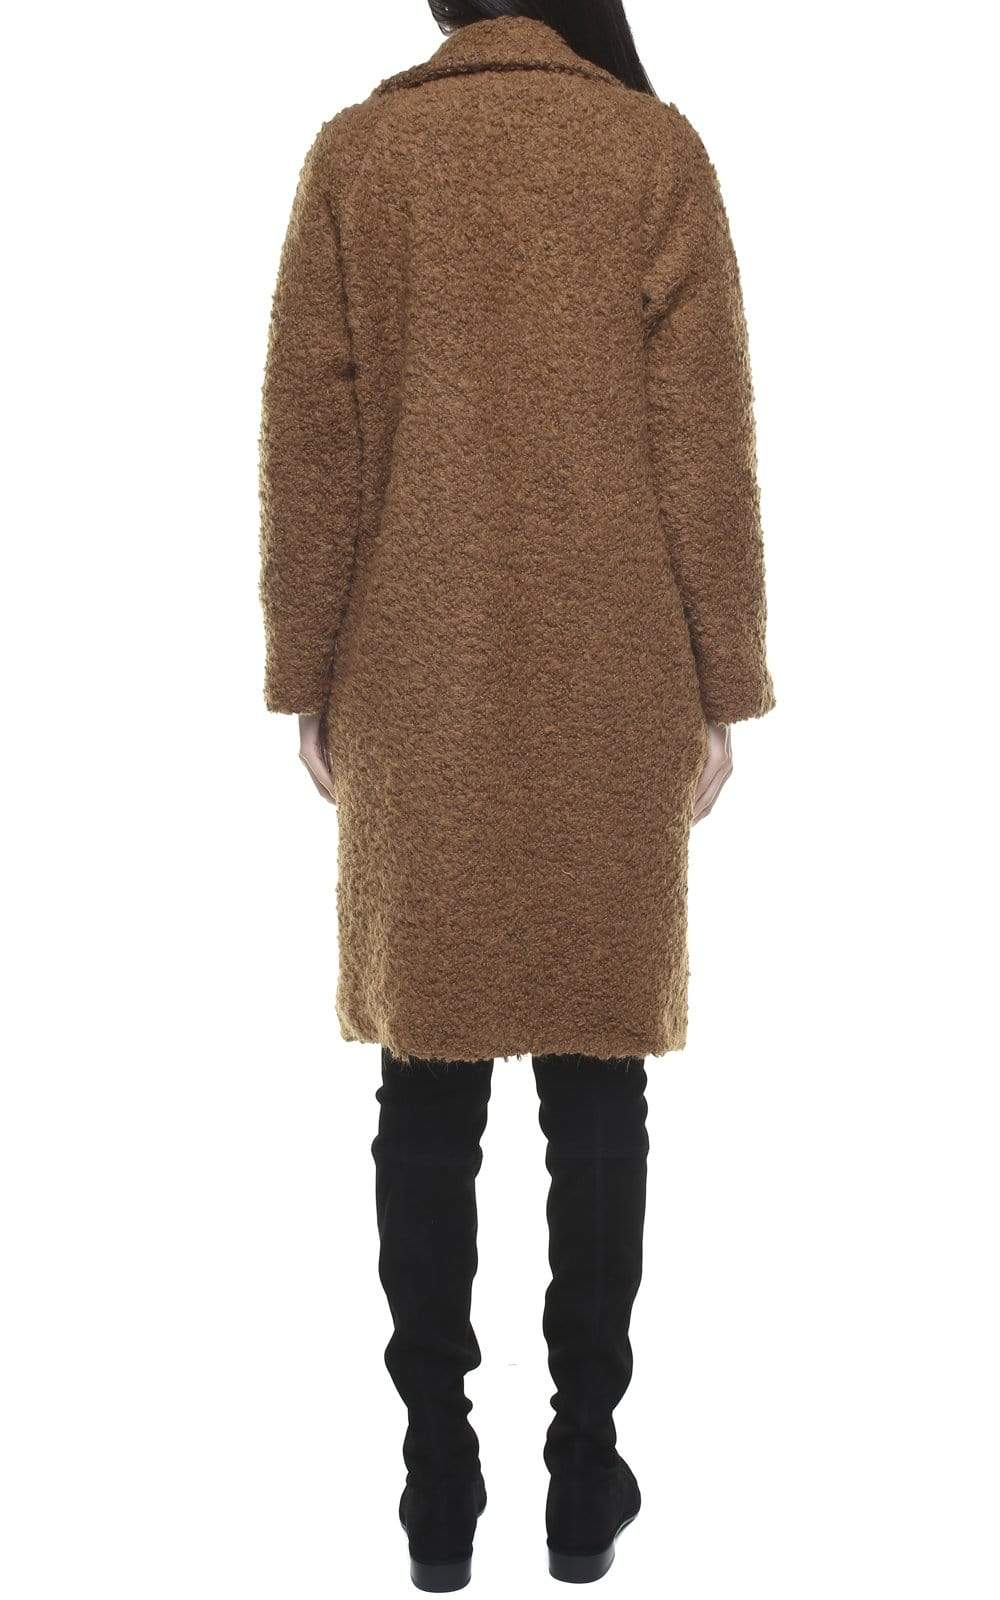 Souldaze Collection coat Janet Coat. Surplus Wool. sustainable fashion ethical fashion